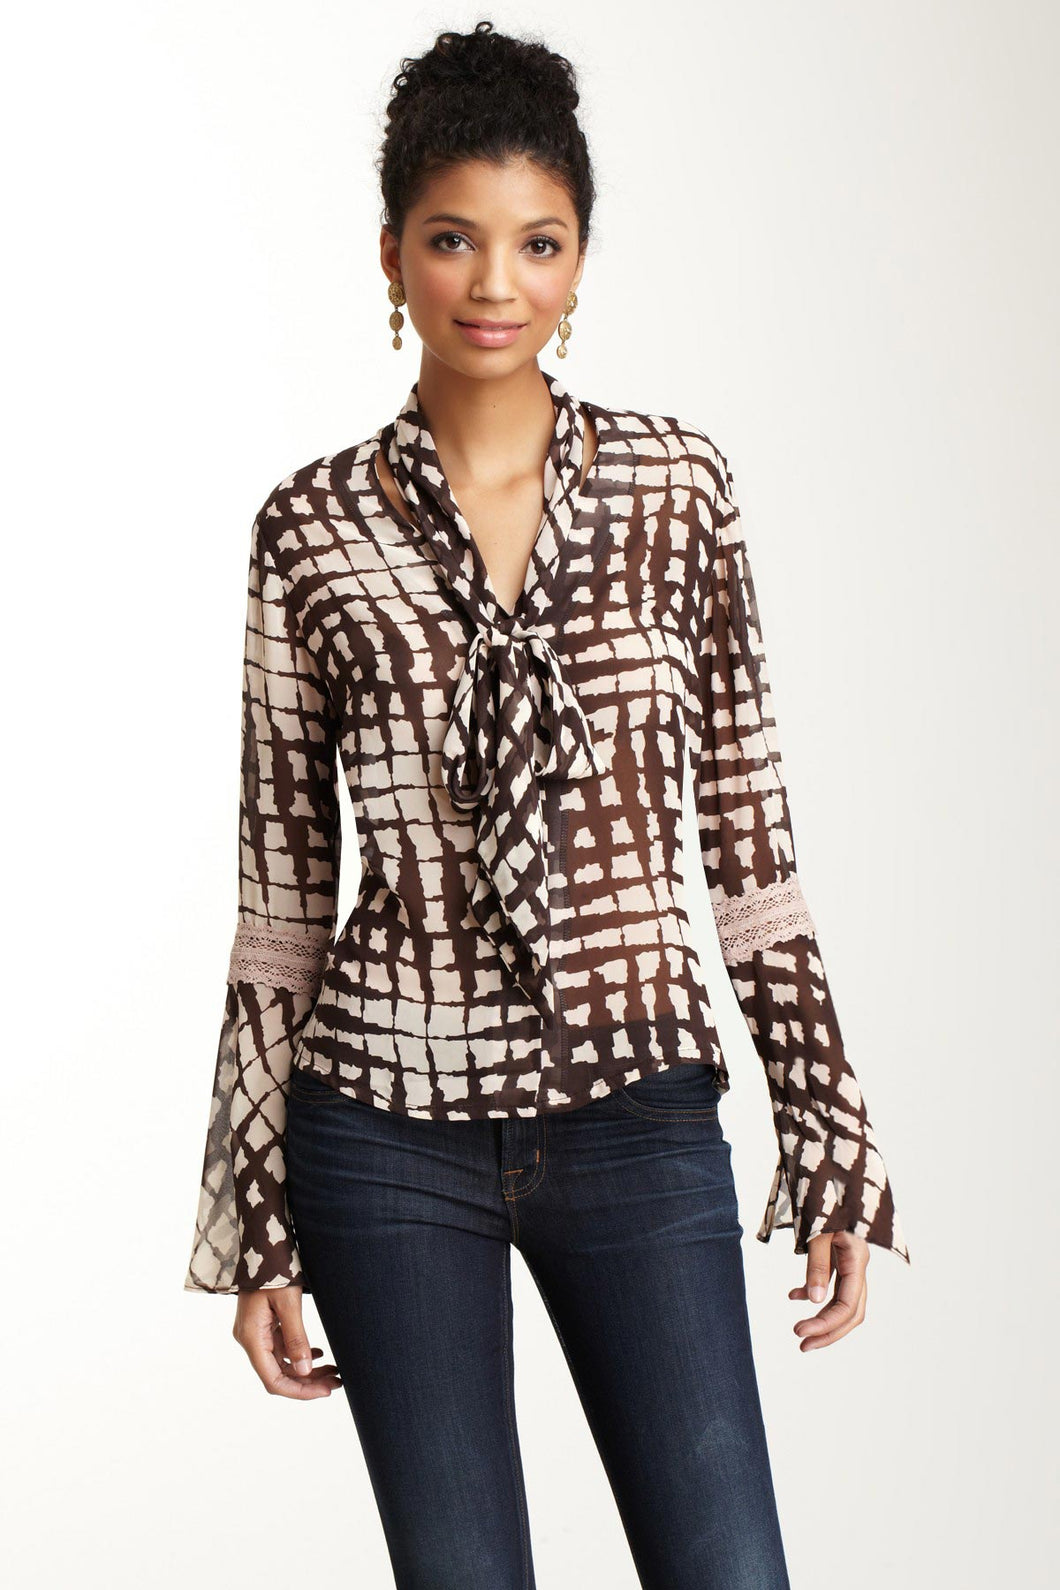 Lace Sleeve Scarf Shirt - Brown / Pink